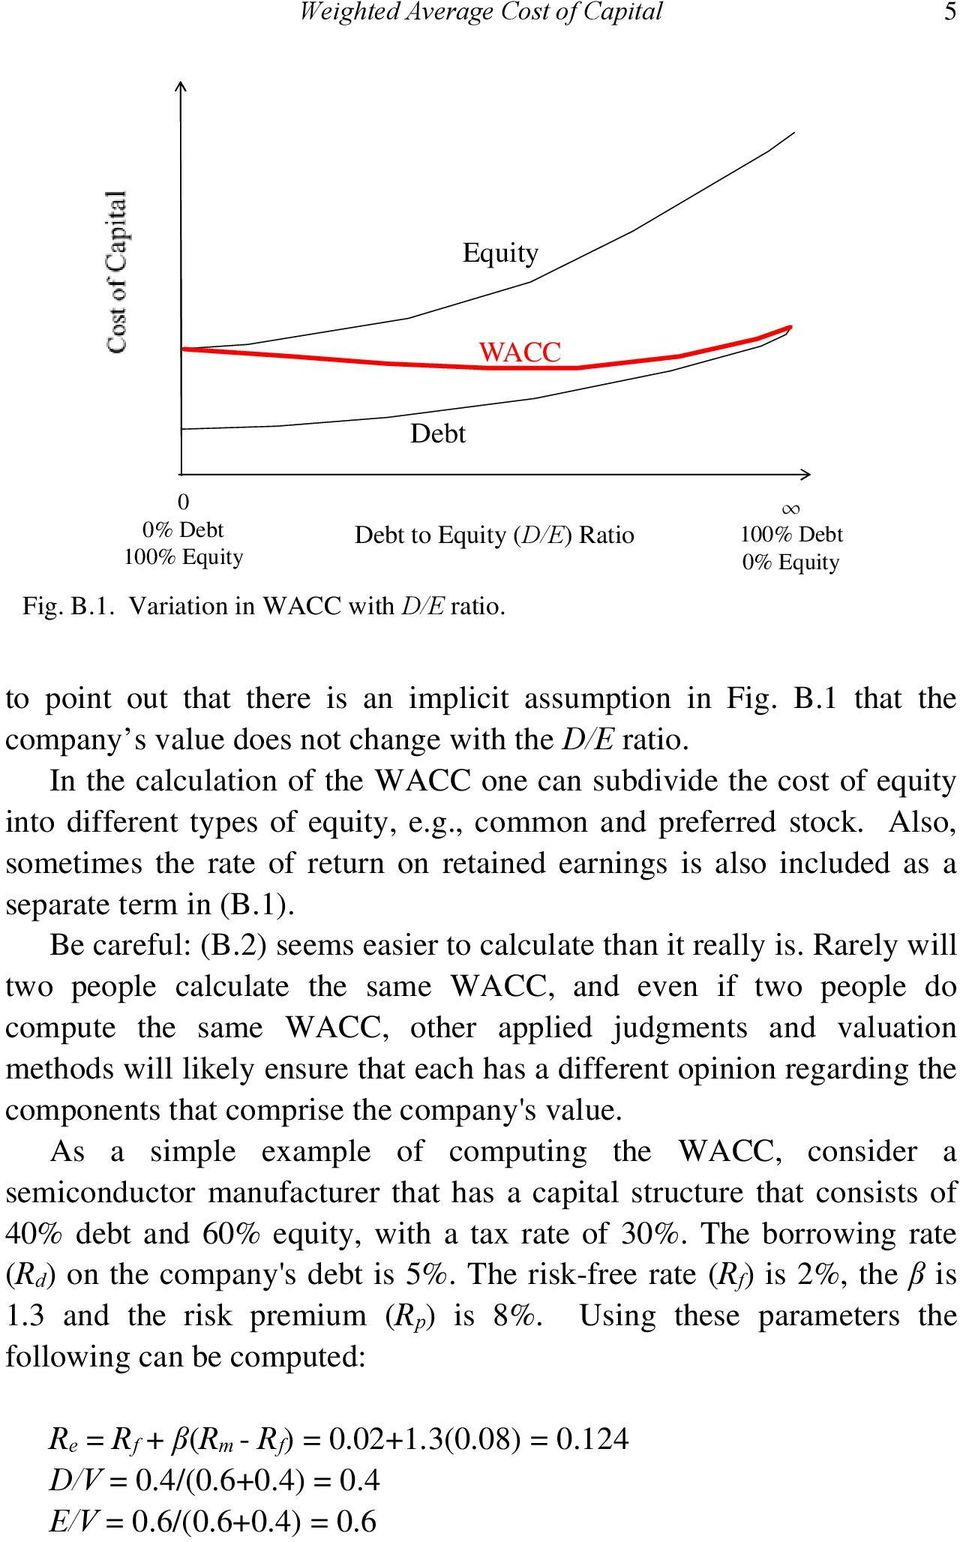 In the calculation of the WACC one can subdivide the cost of equity into different types of equity, e.g., common and preferred stock.